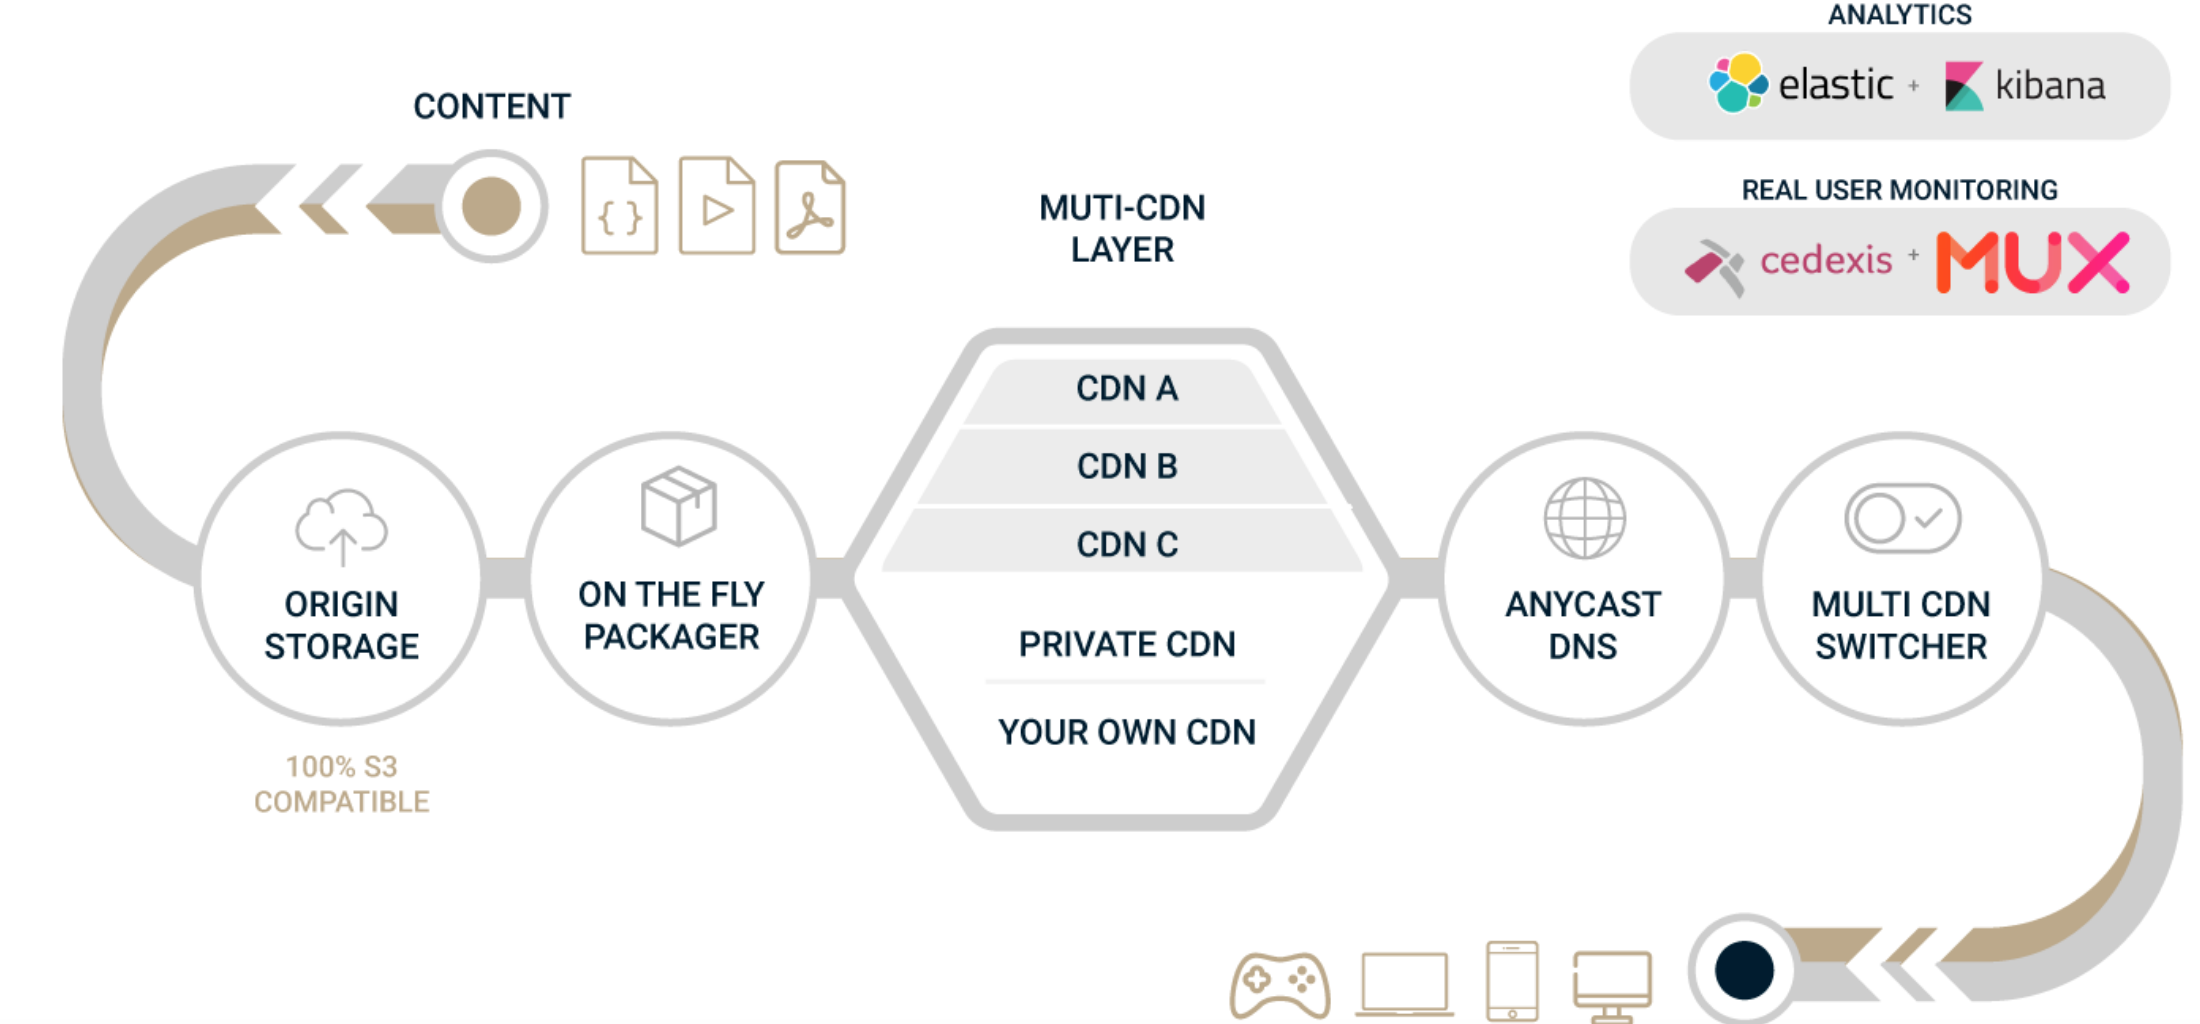 private cdn as part of video streaming workflow